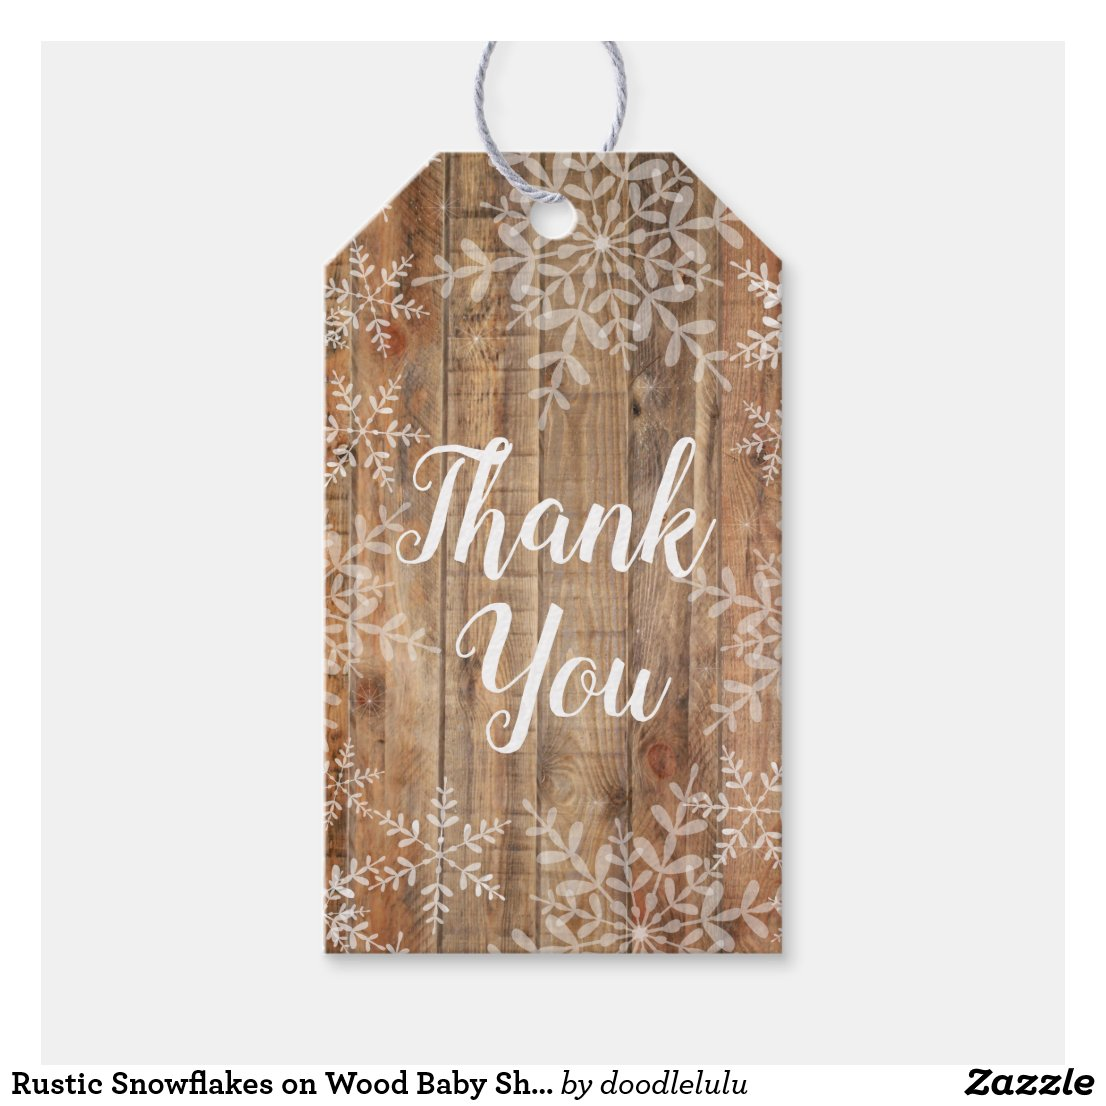 Rustic Snowflakes on Wood Baby Shower Gift Tags